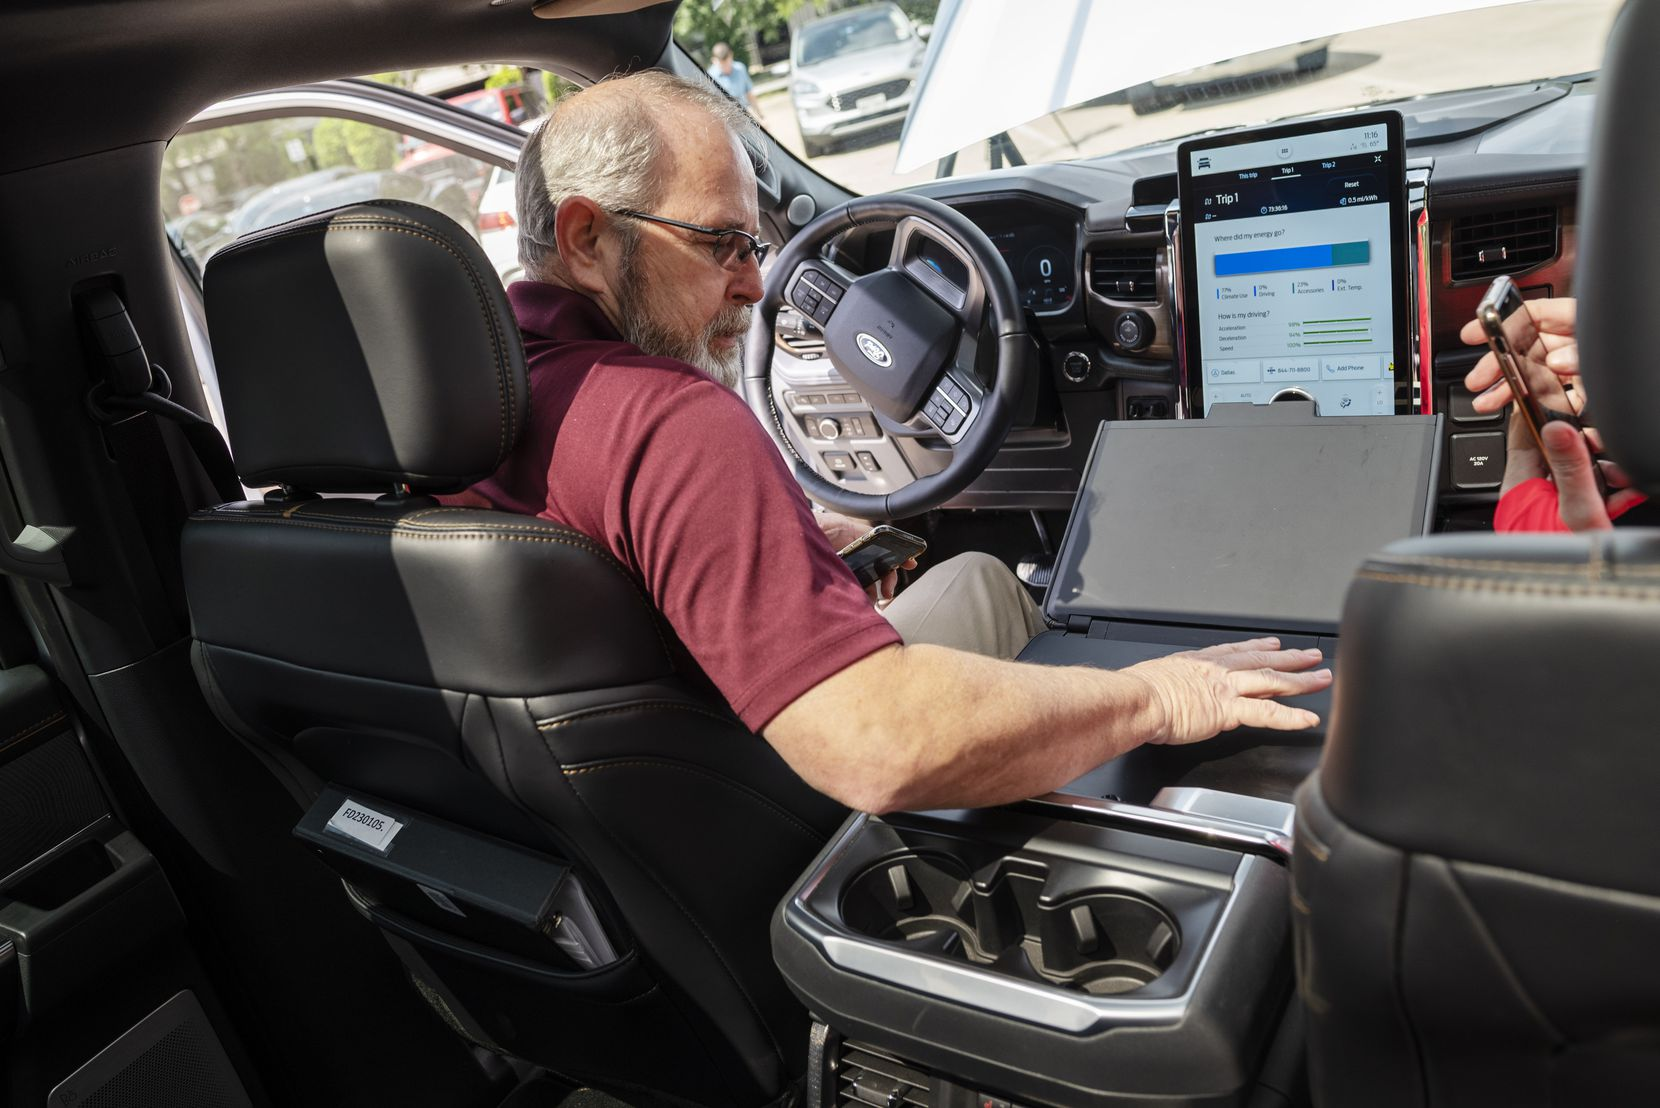 Arthur Grothe, manager of equipment services for the city of Mesquite, tries some of the features, including a folding workstation for using a laptop or writing, inside the Ford F-150 Lightning.